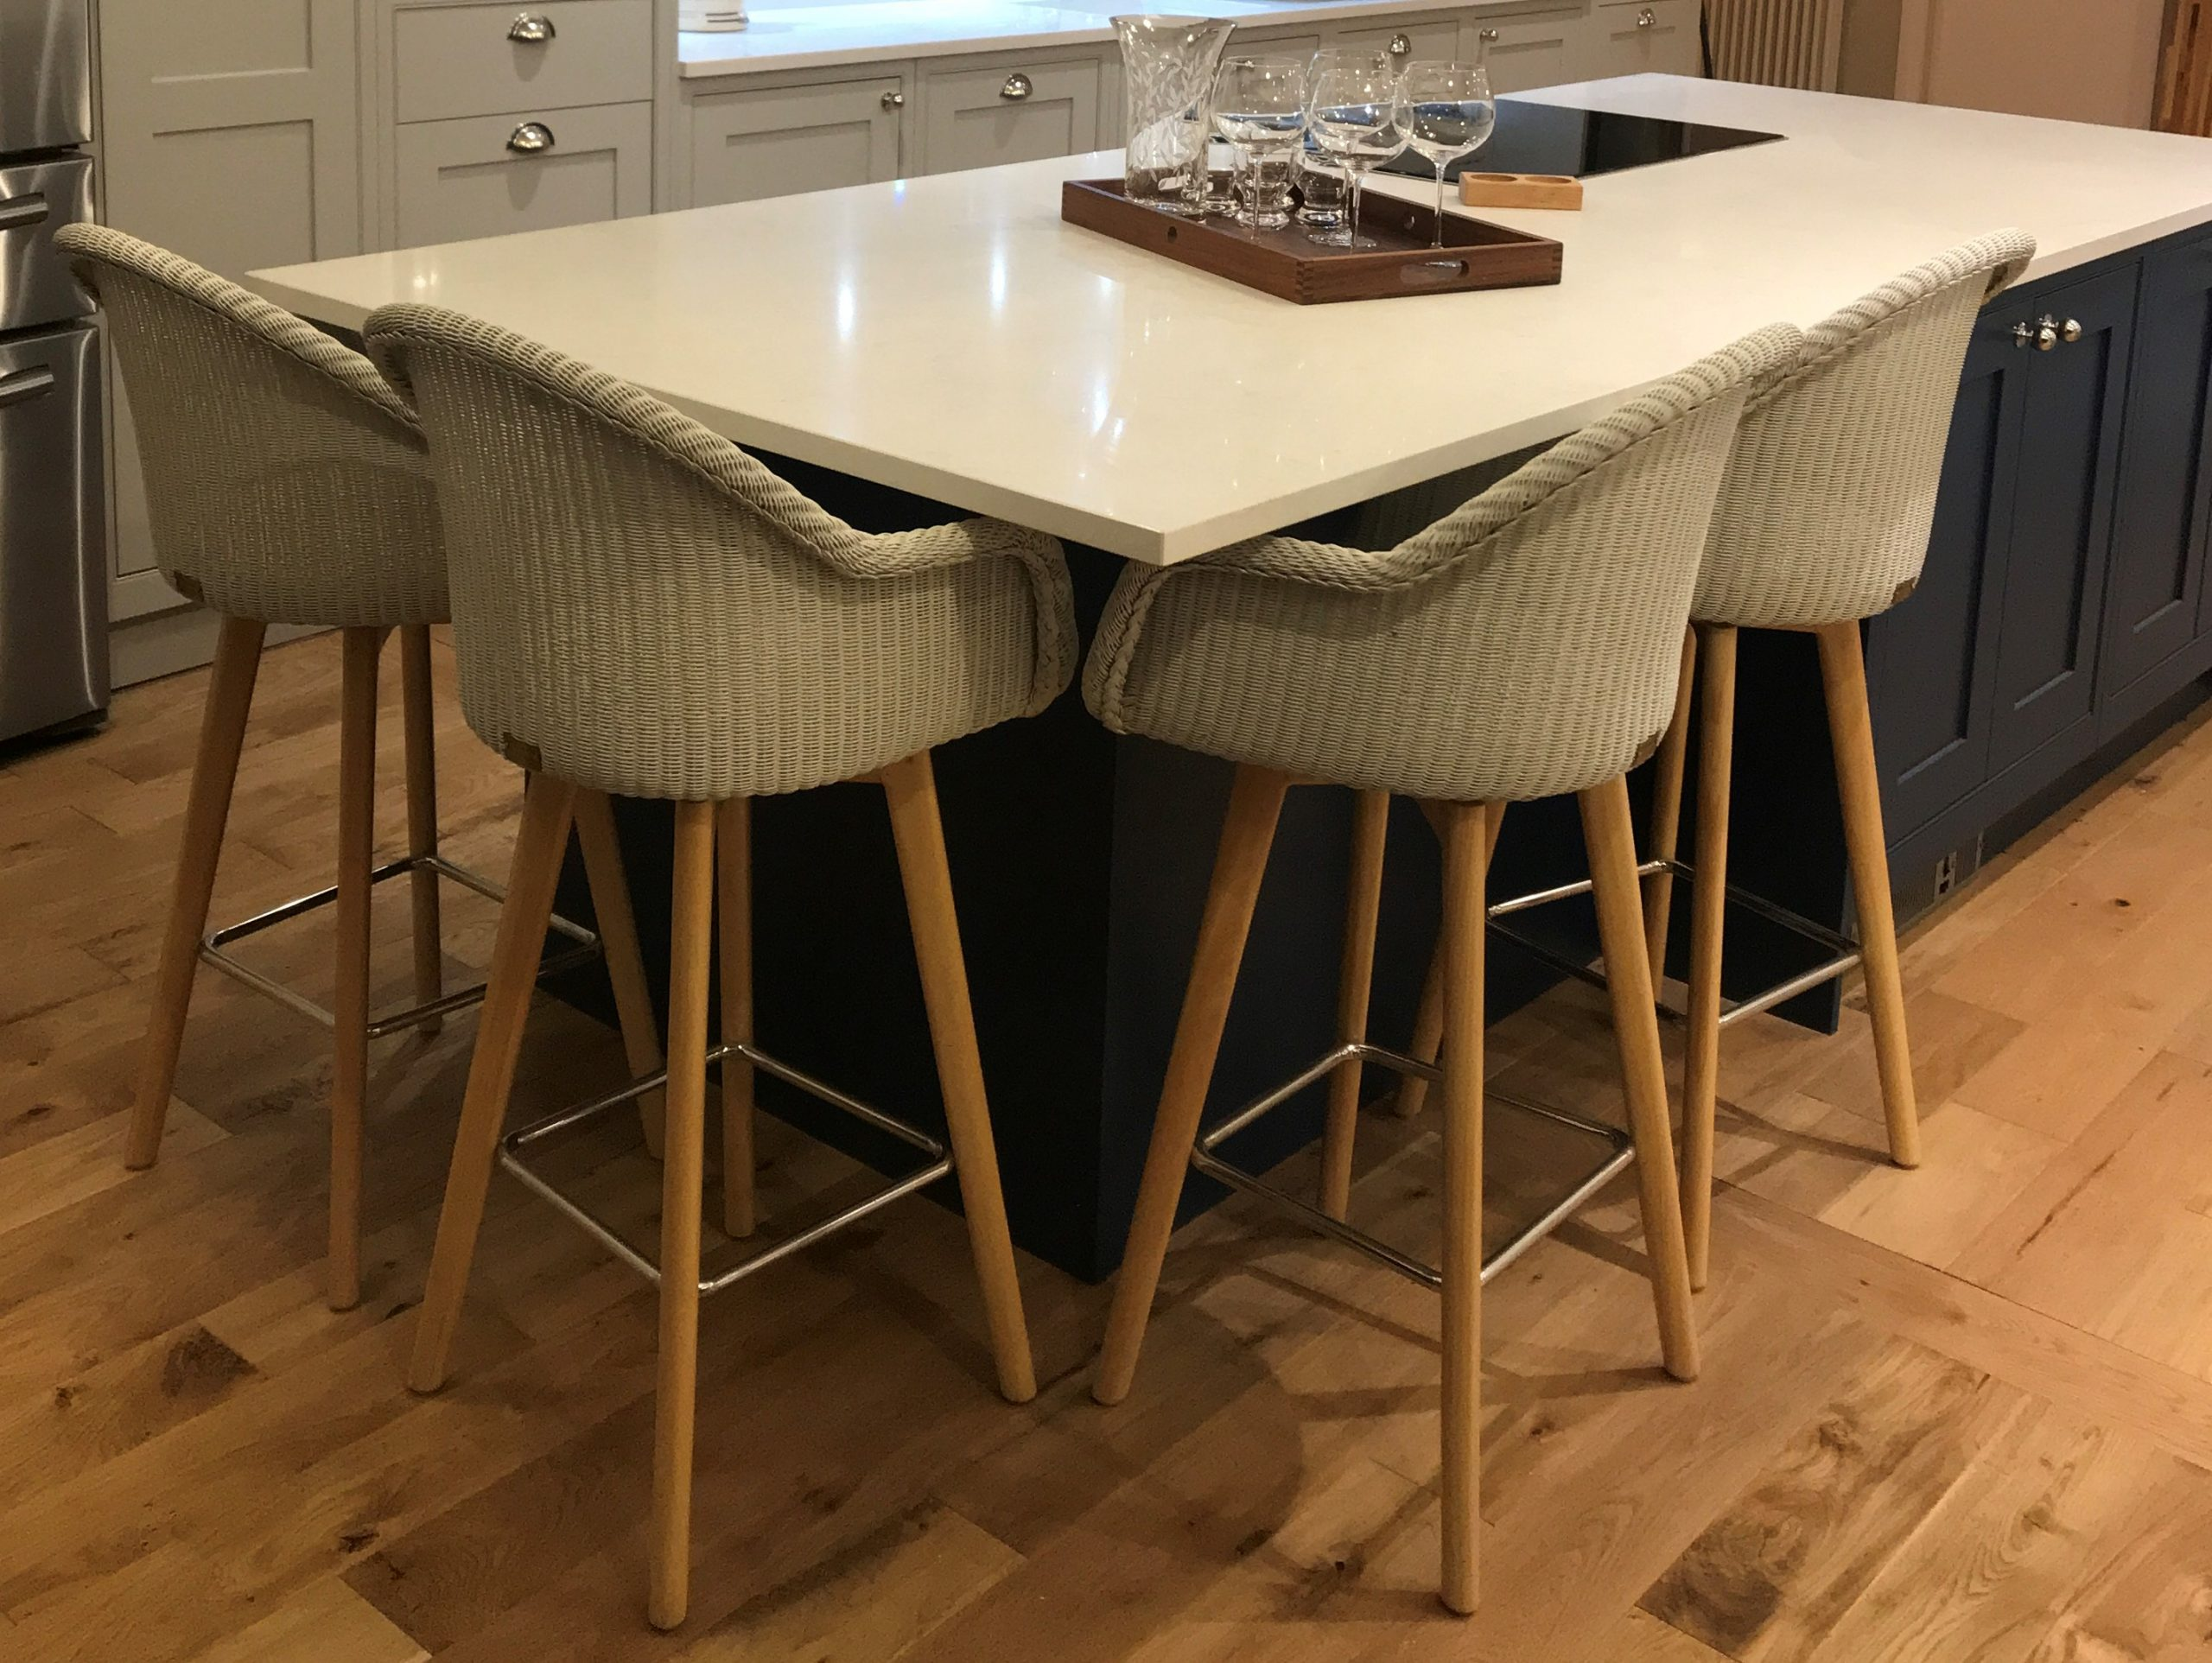 Carnaby Lloyd Loom Bar Chair